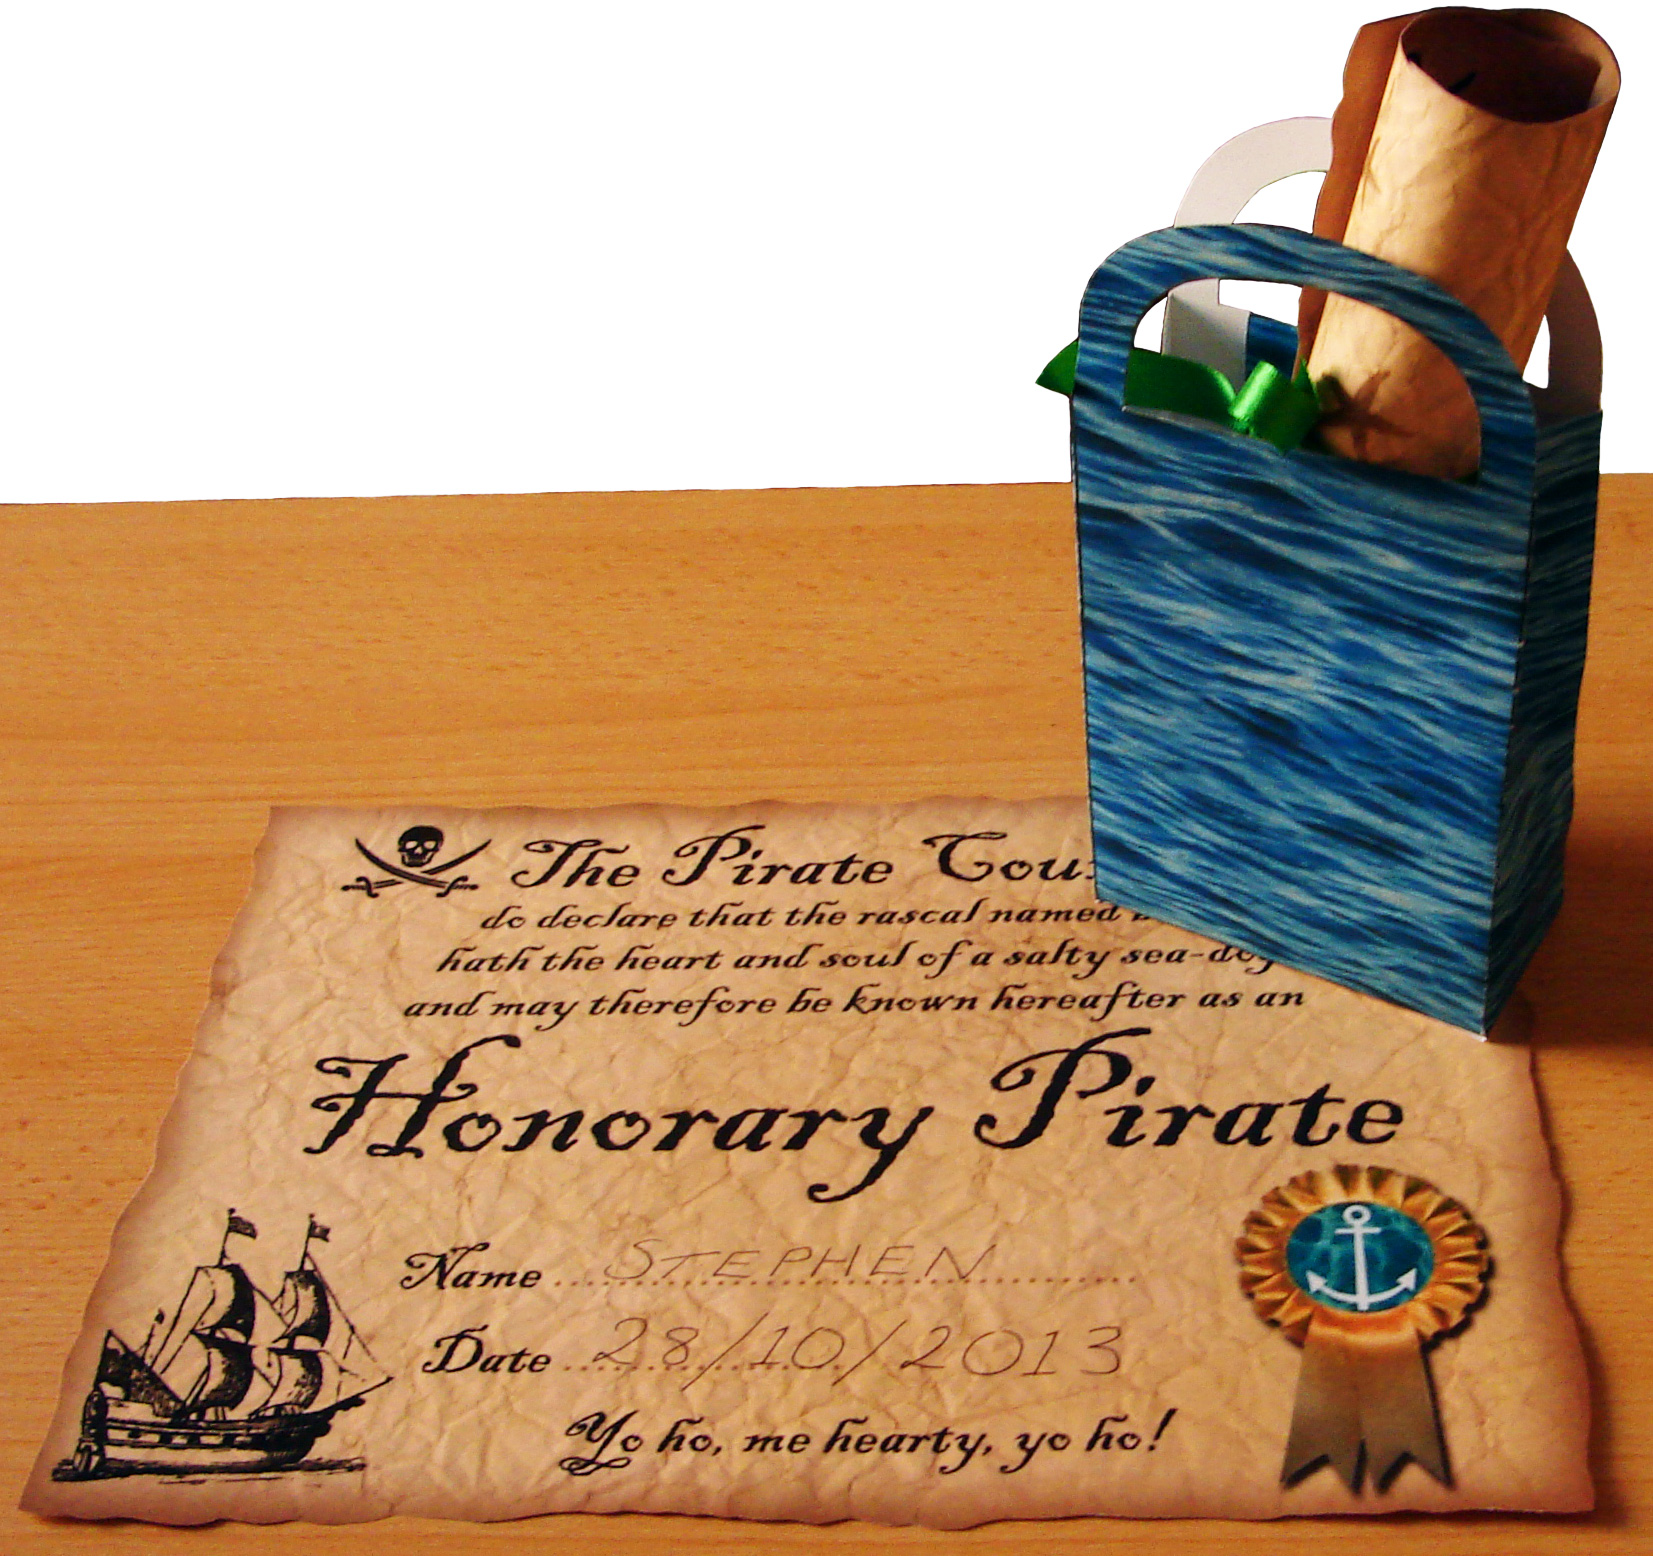 Photo of Free Pirate Certificates with Ocean Themed Bag